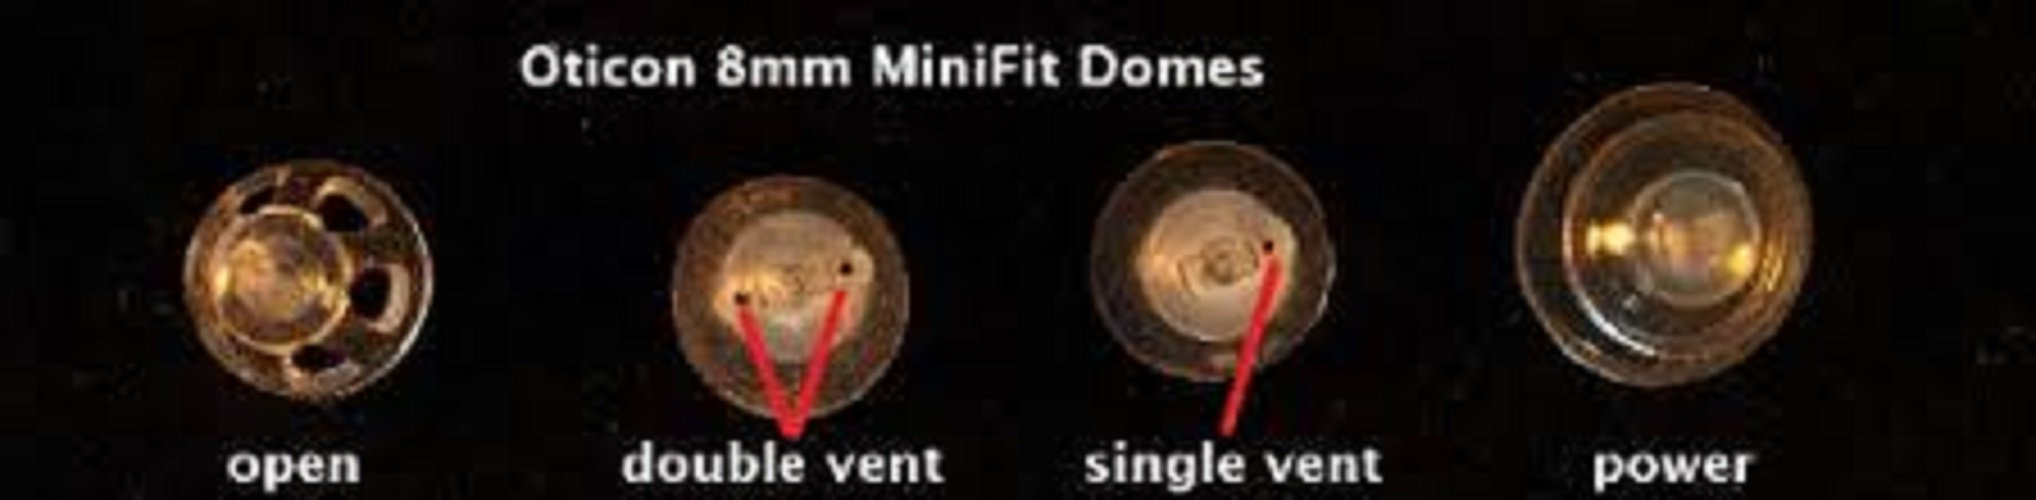 Oticon Replacement Domes for MiniRite Hearing Aids (8mm Power)